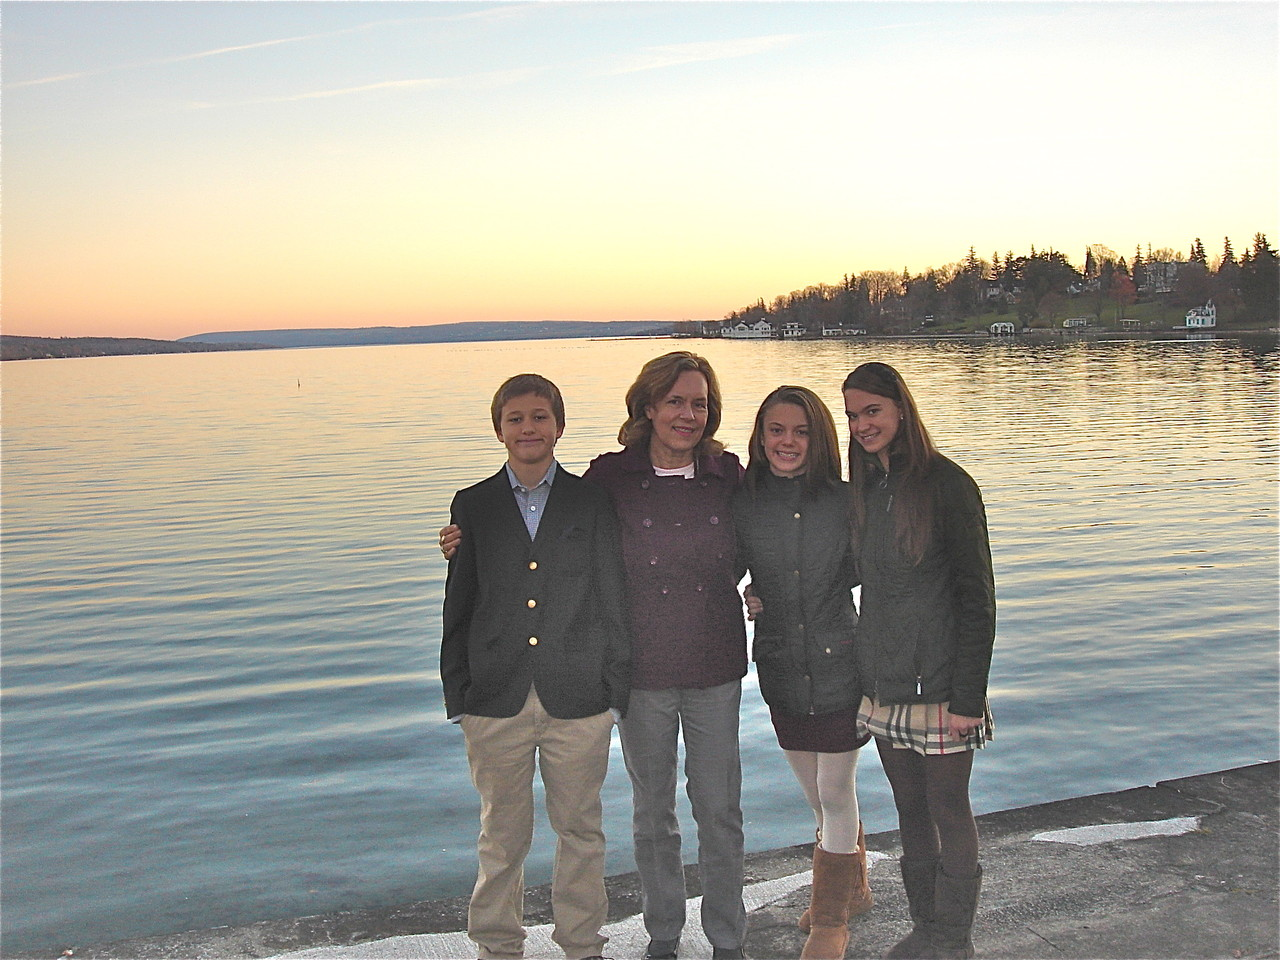 Jack, Lorraine, Kate, & Ellie, Skaneateles Lake, Thanksgiving, 2012.